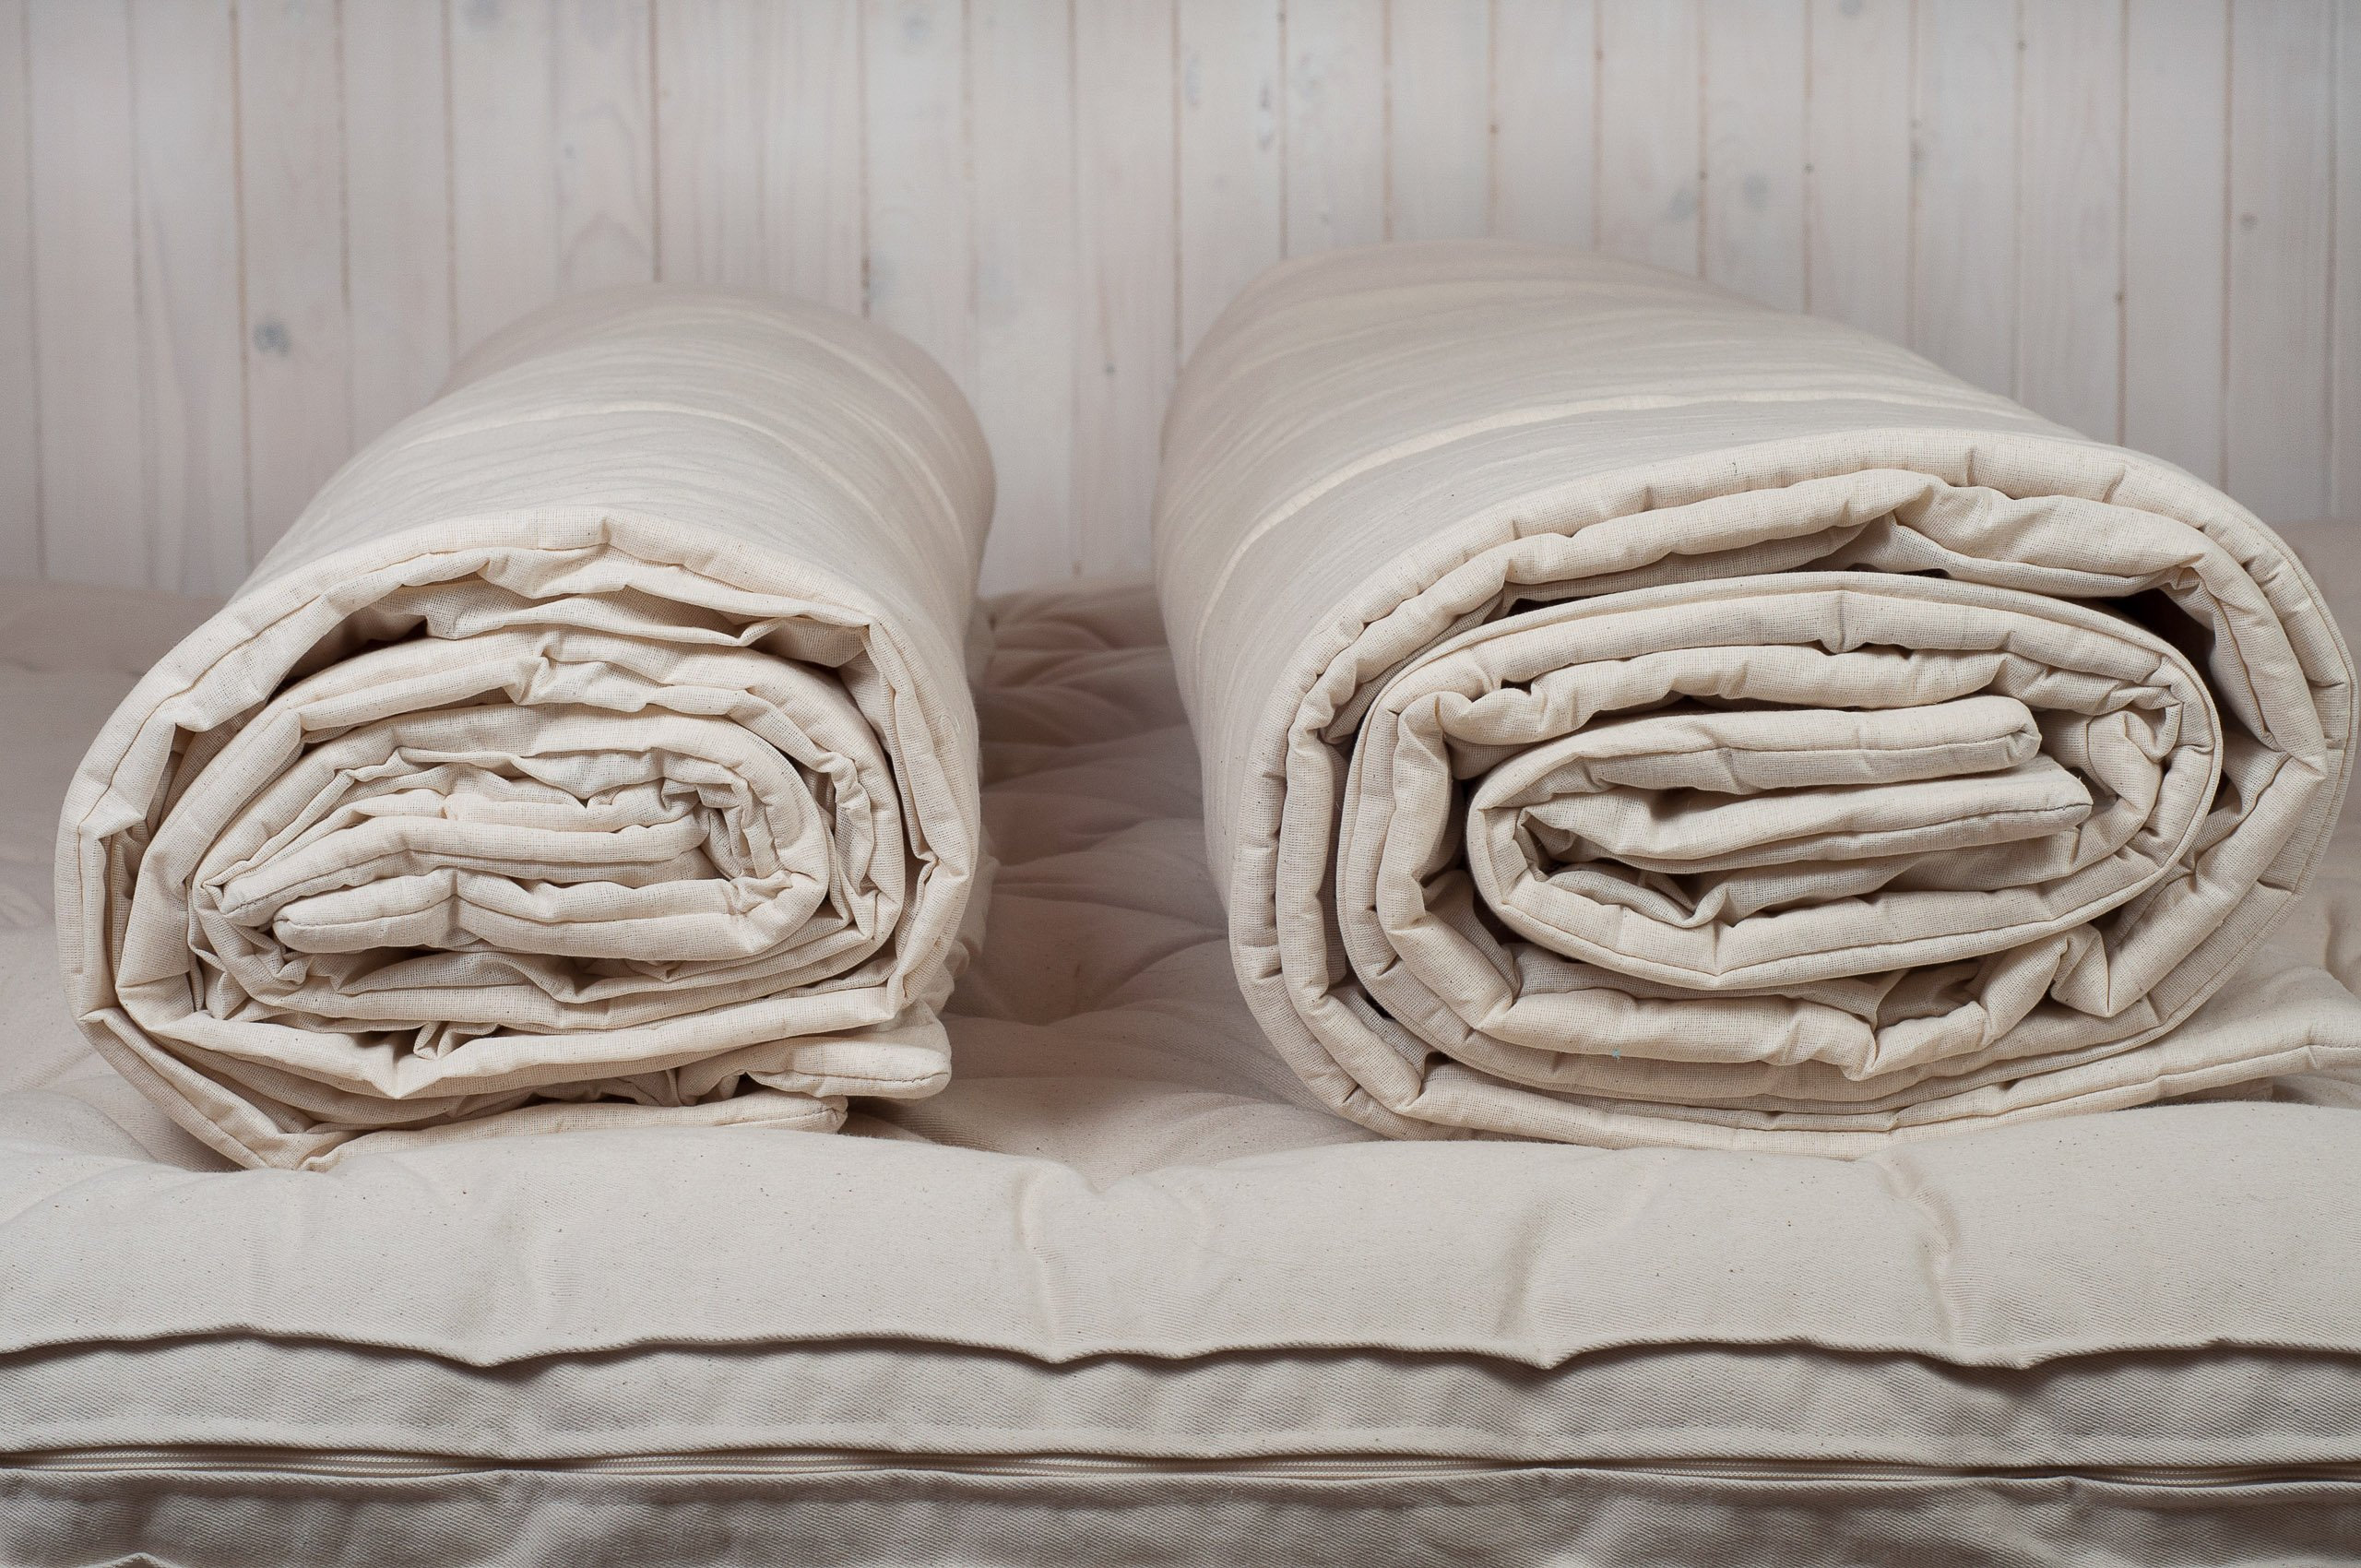 Home of Wool / Handmade Wool-filled Duvet Insert / Quilt / Comforter / Doona / Summer or Winter thickness / Natural / Non-toxic / Full, Twin, Queen, King or Any Custom Size by Home Of Wool (Image #4)